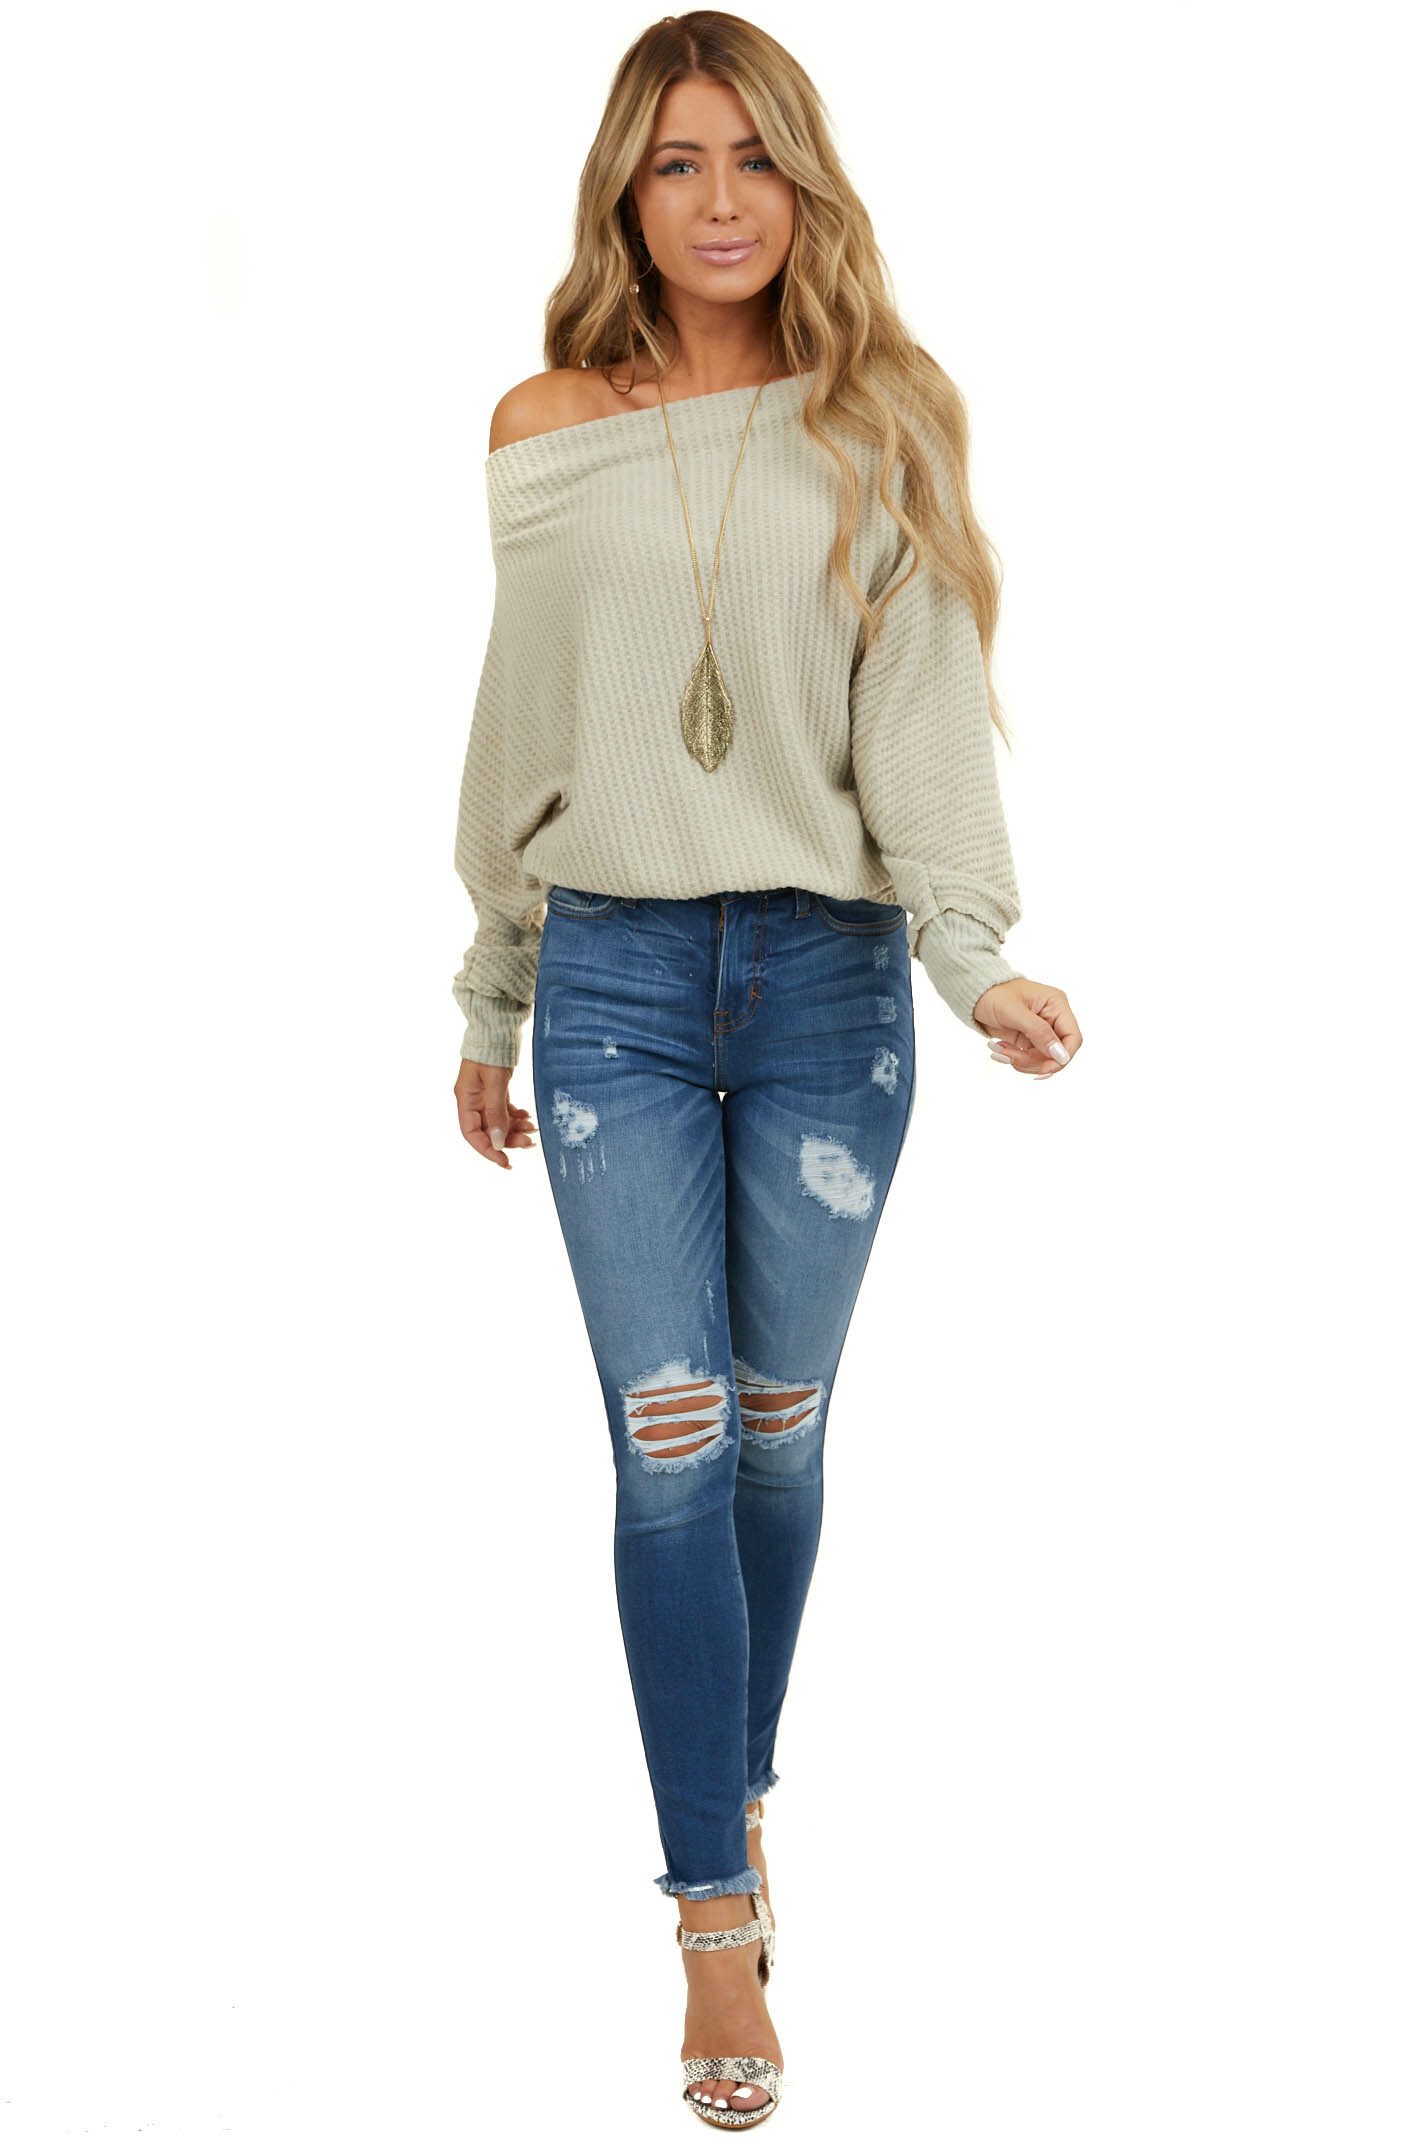 Oatmeal Boat Neck Off Shoulder Sweater with Dolman Sleeves